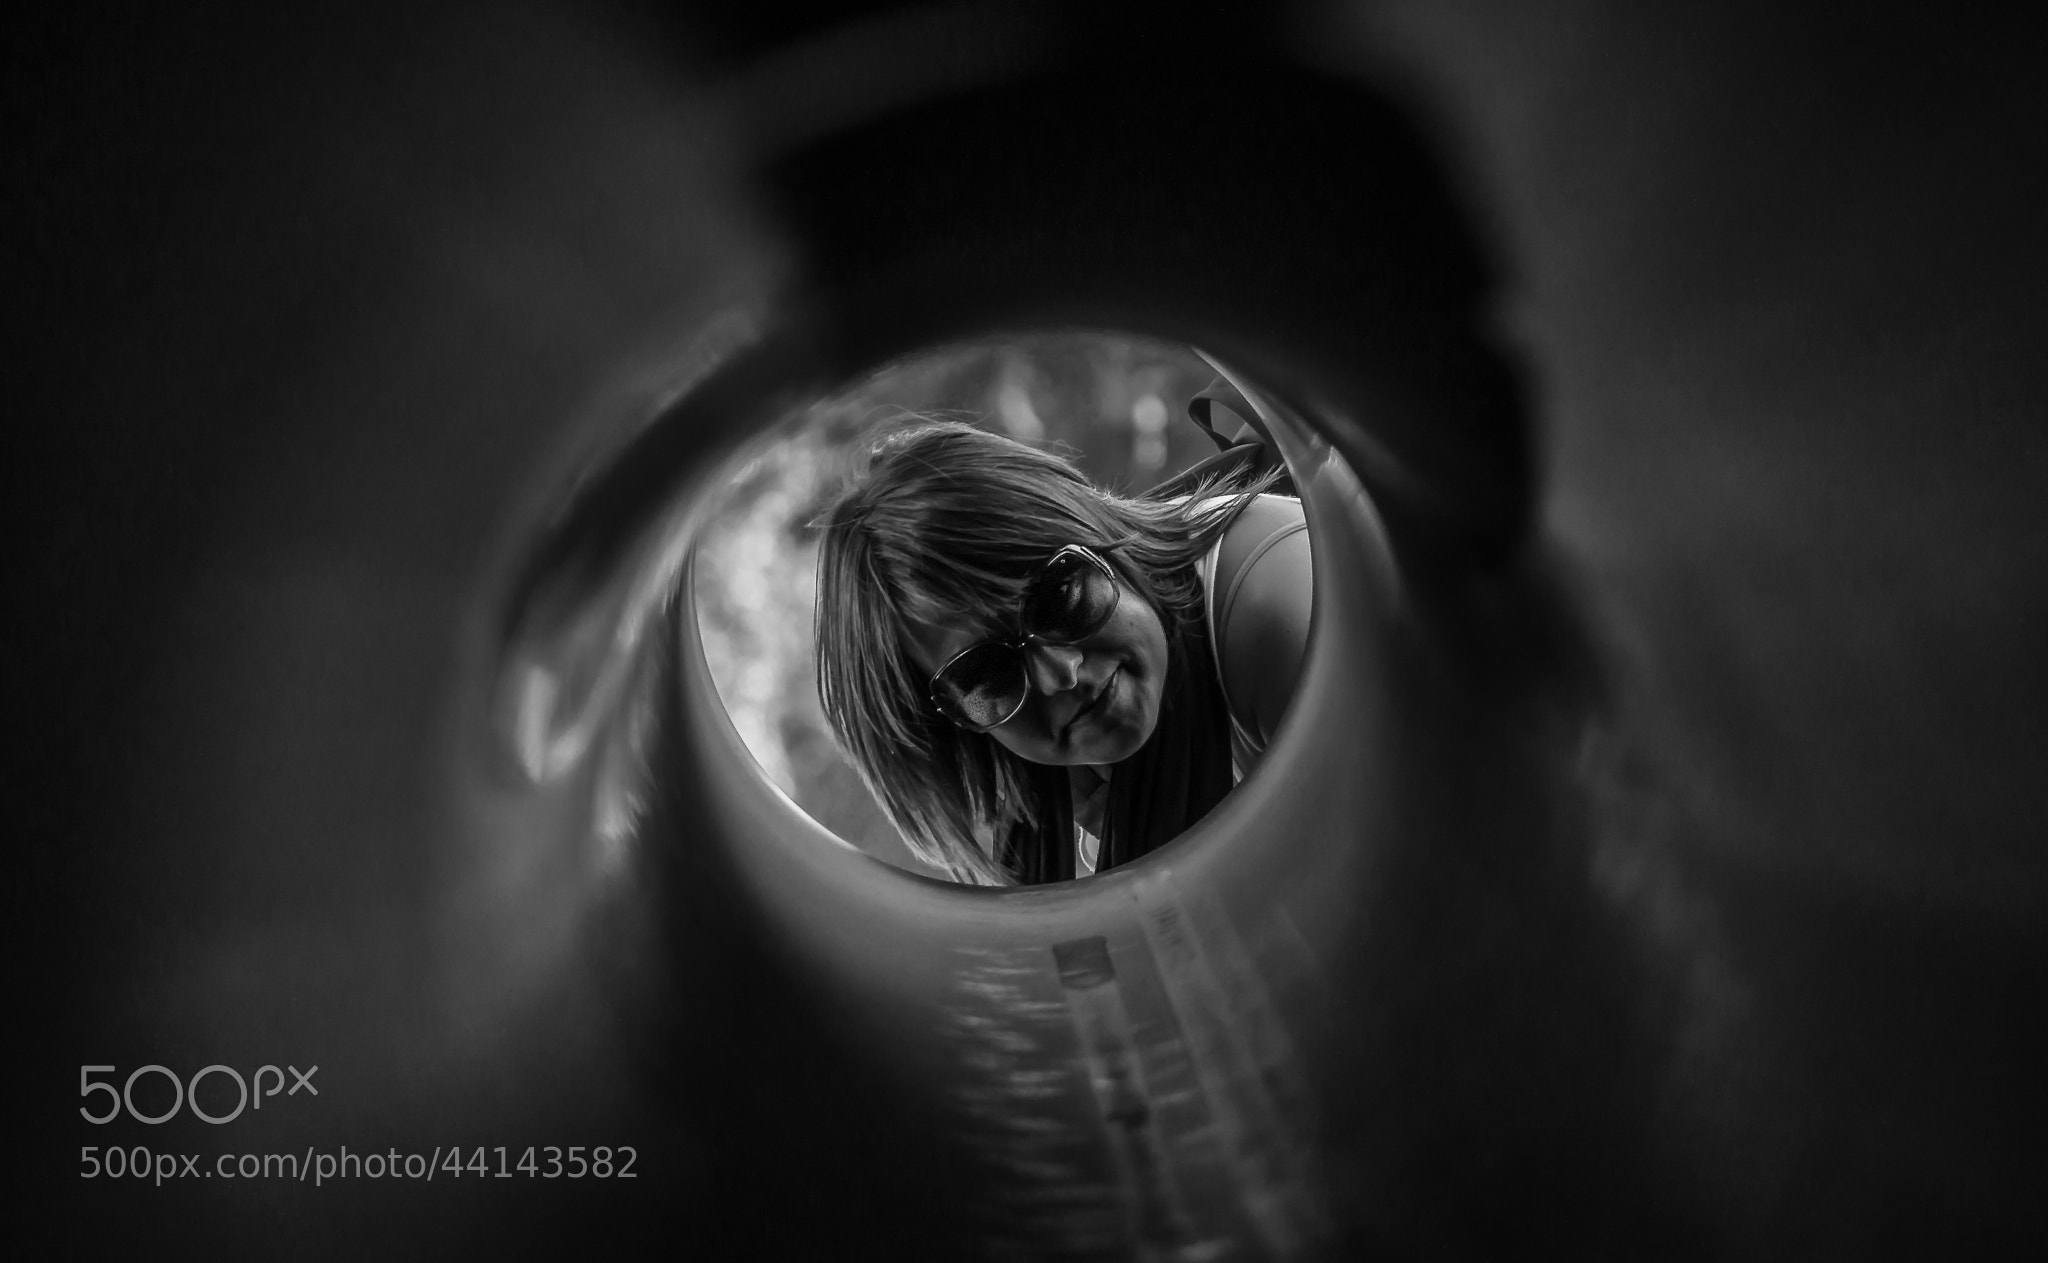 Photograph Down the barrel of a gun by Johnny Bravo on 500px